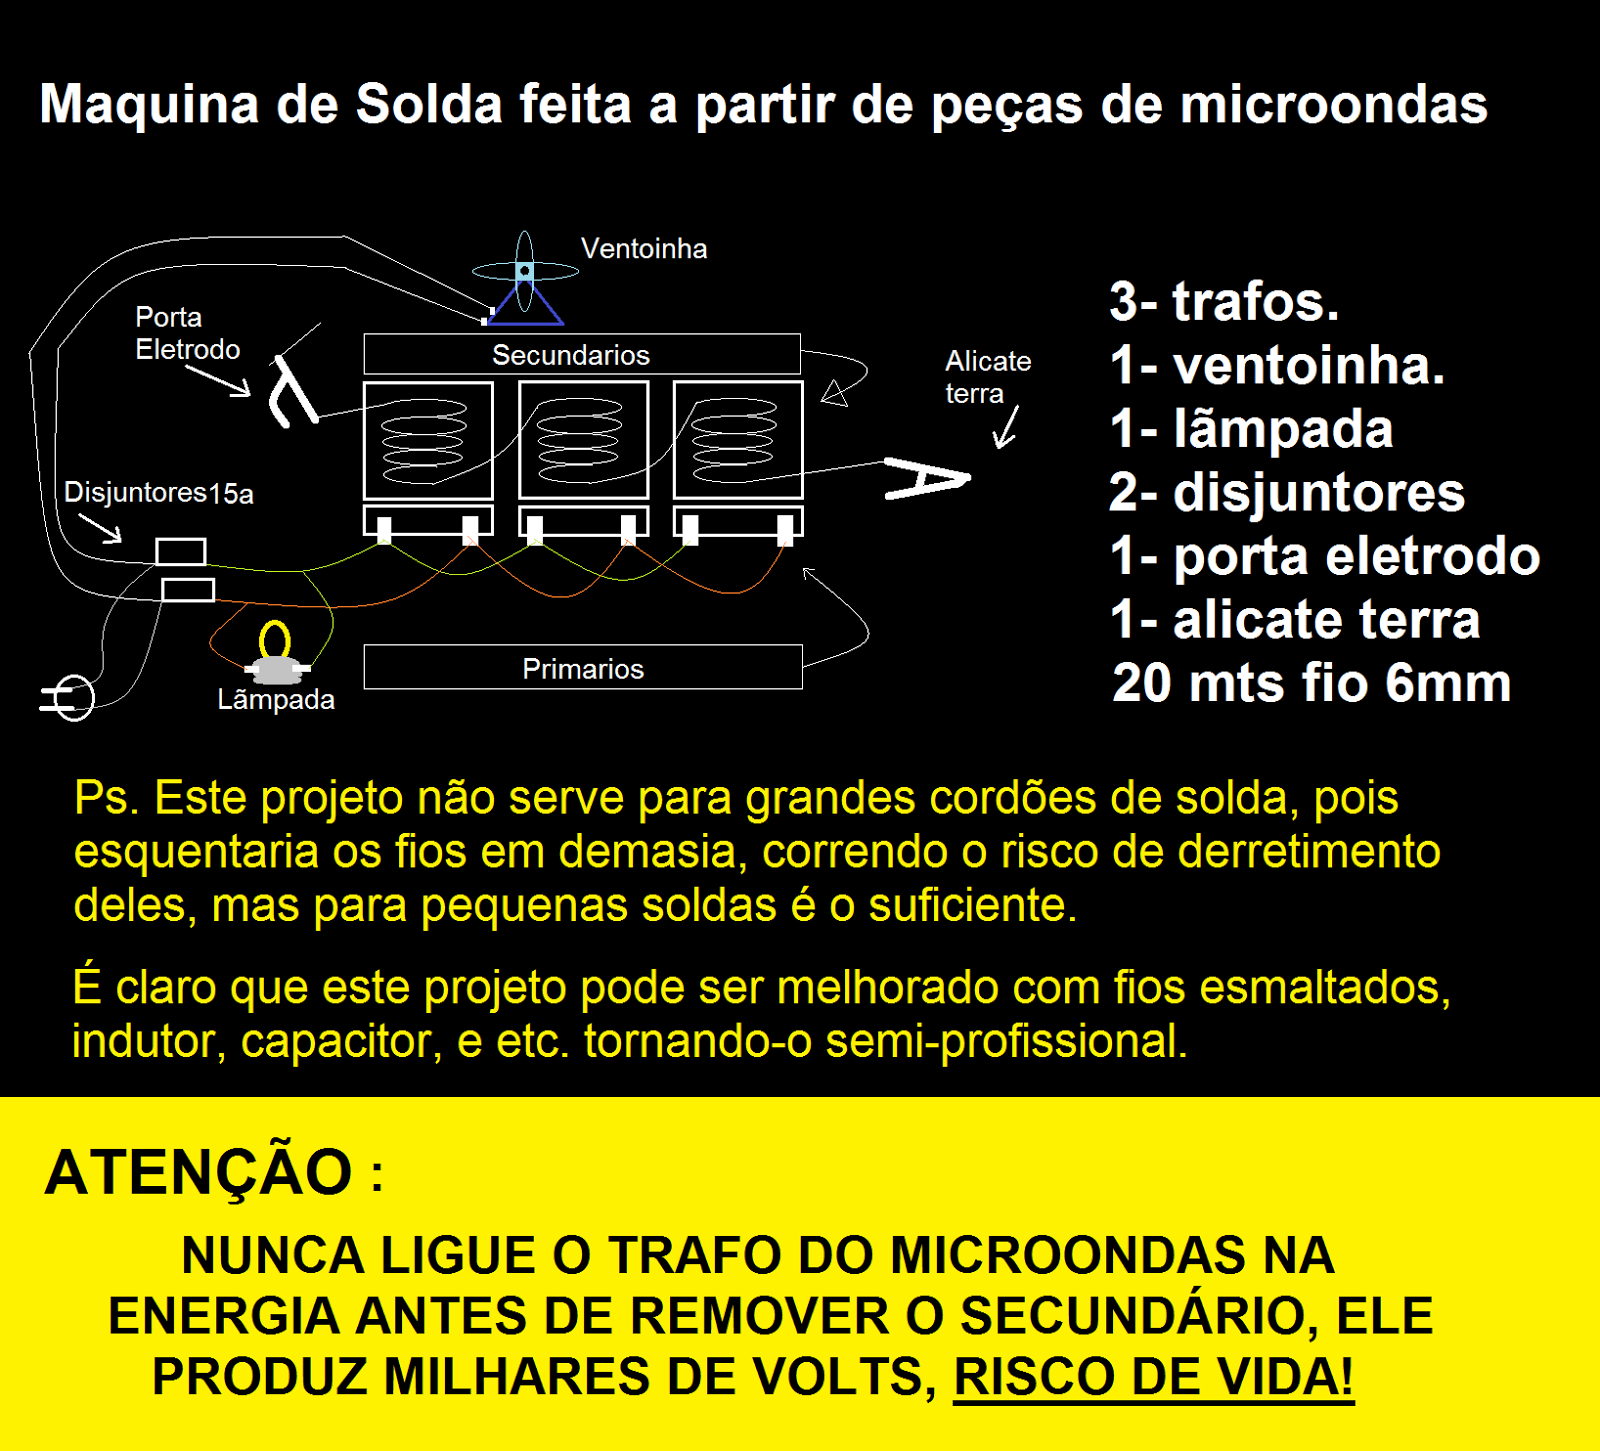 Pvc passo a passo maquina de solda caseira feita com microondas try watching this video on youtube or enable javascript if it is disabled in your browser ccuart Choice Image